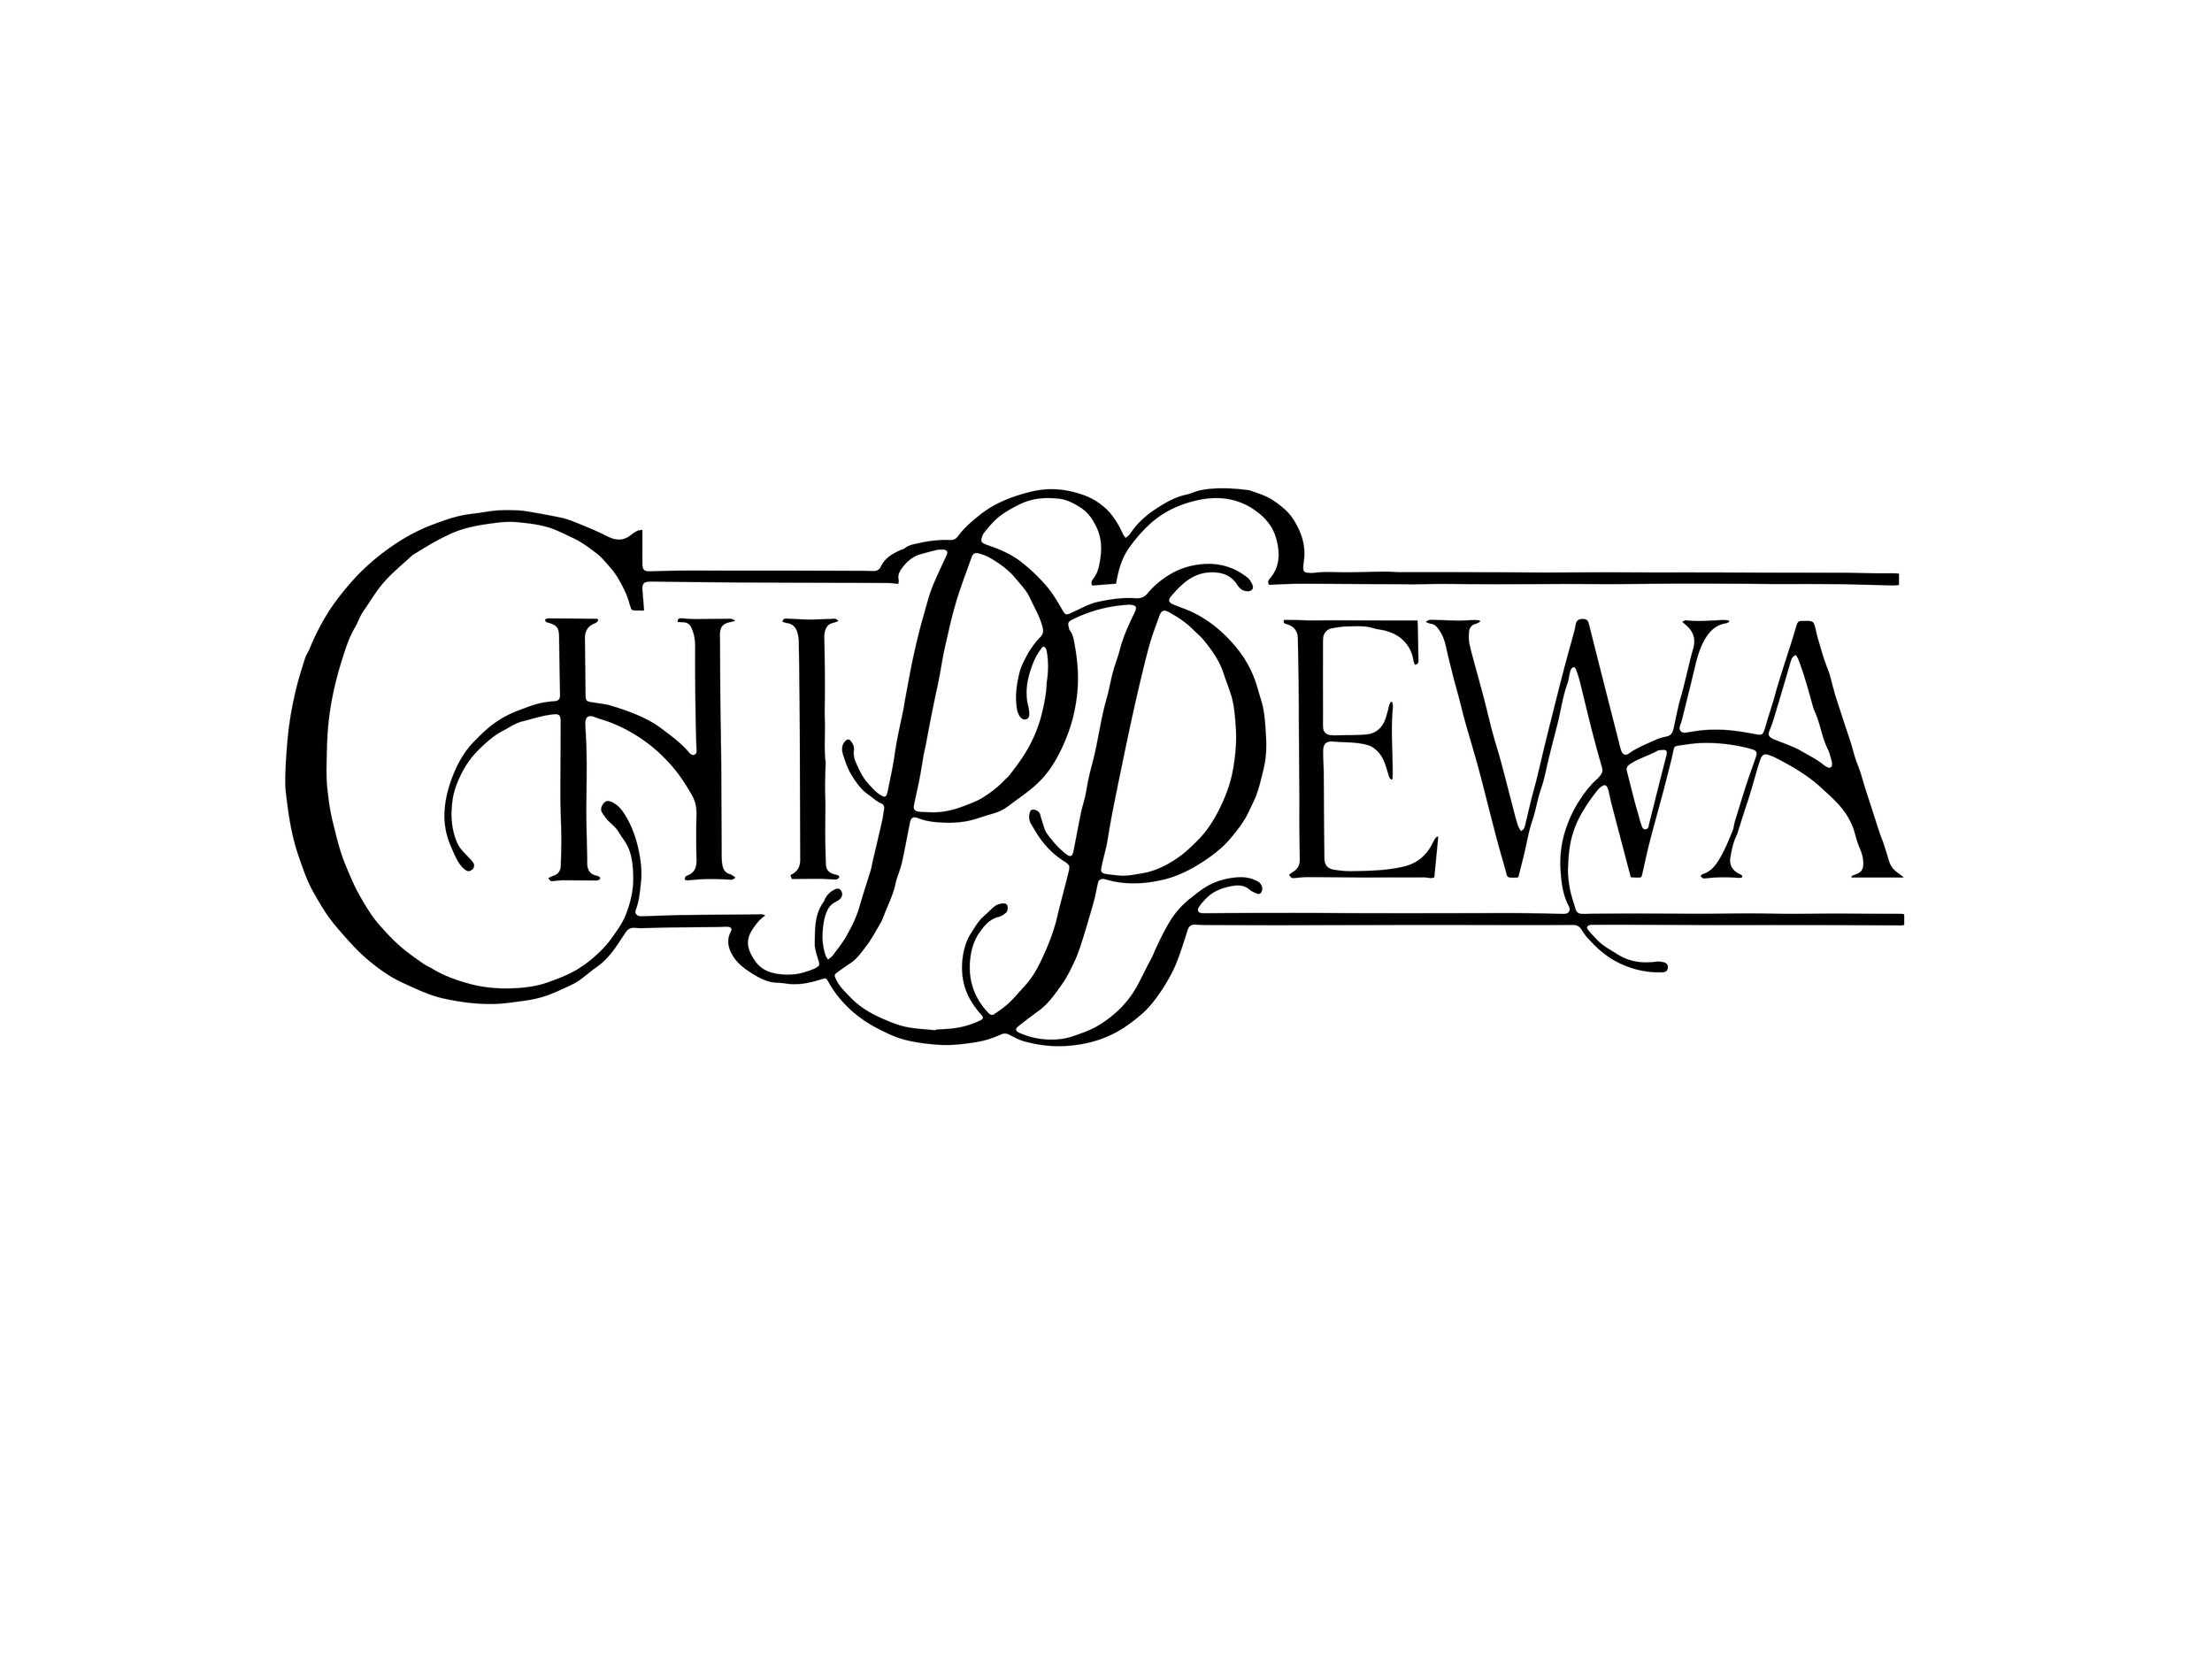 CLICK HERE TO SEE OTHER ASSETS THAT WHOVILLE HAS CREATED FOR CHIPPEWA SPRING WATER